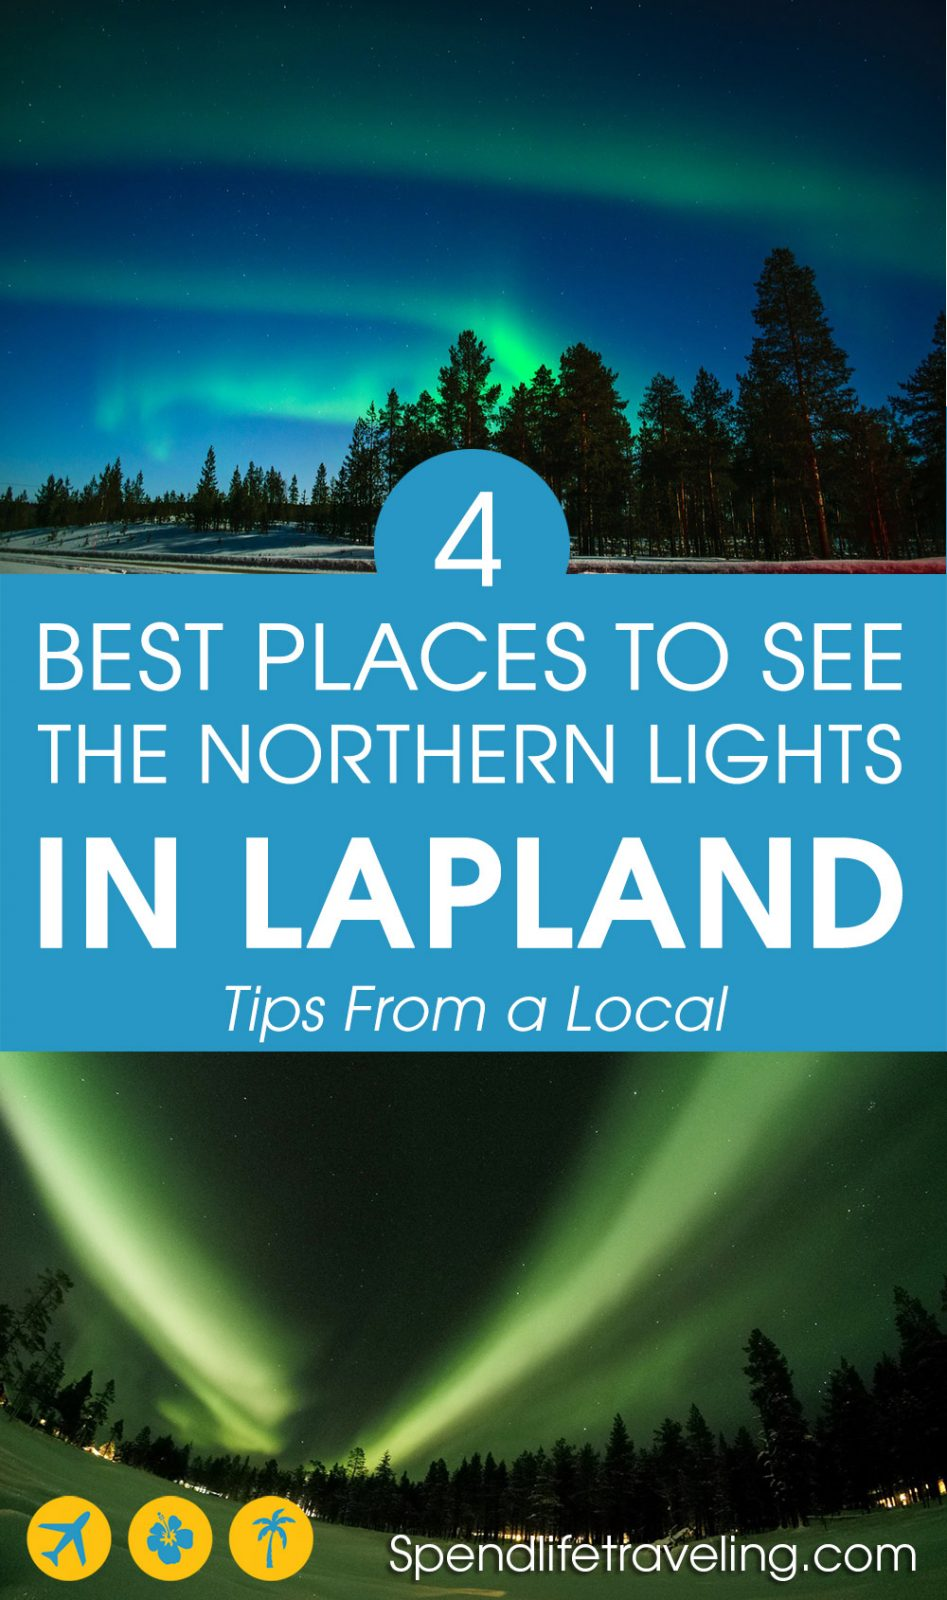 4 of the best places to see the northern lights in Finnish Lapland